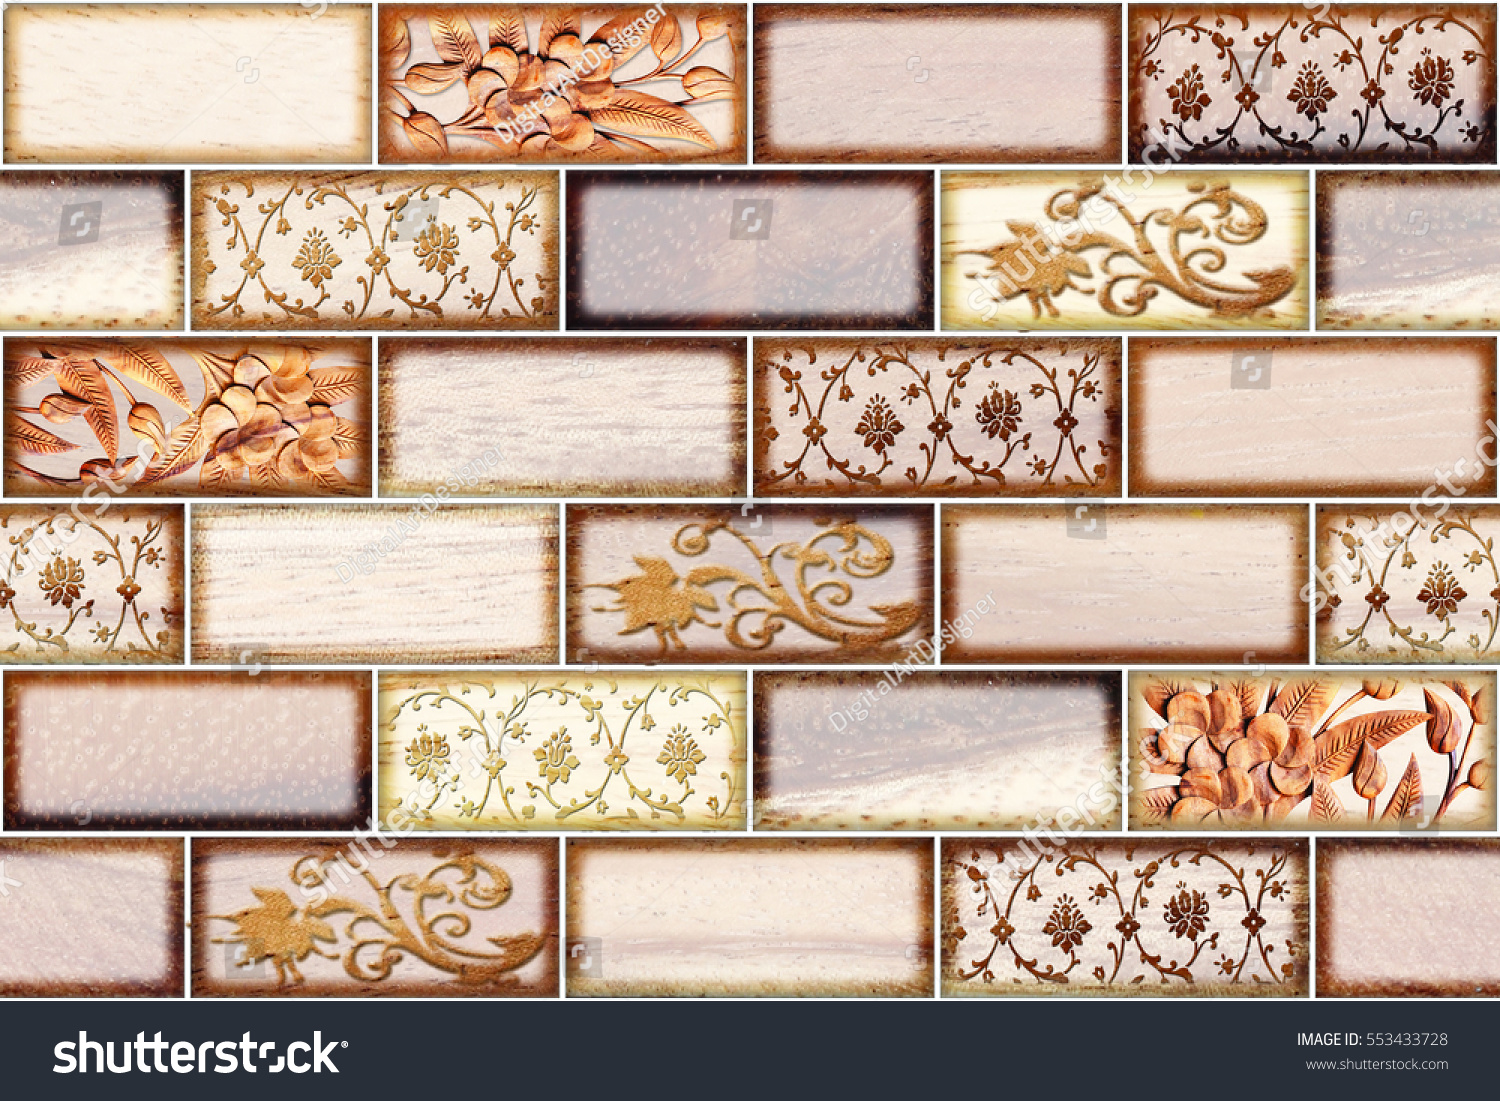 Colorful Vintage Ceramic Tiles Wall Decoration Digital Stock